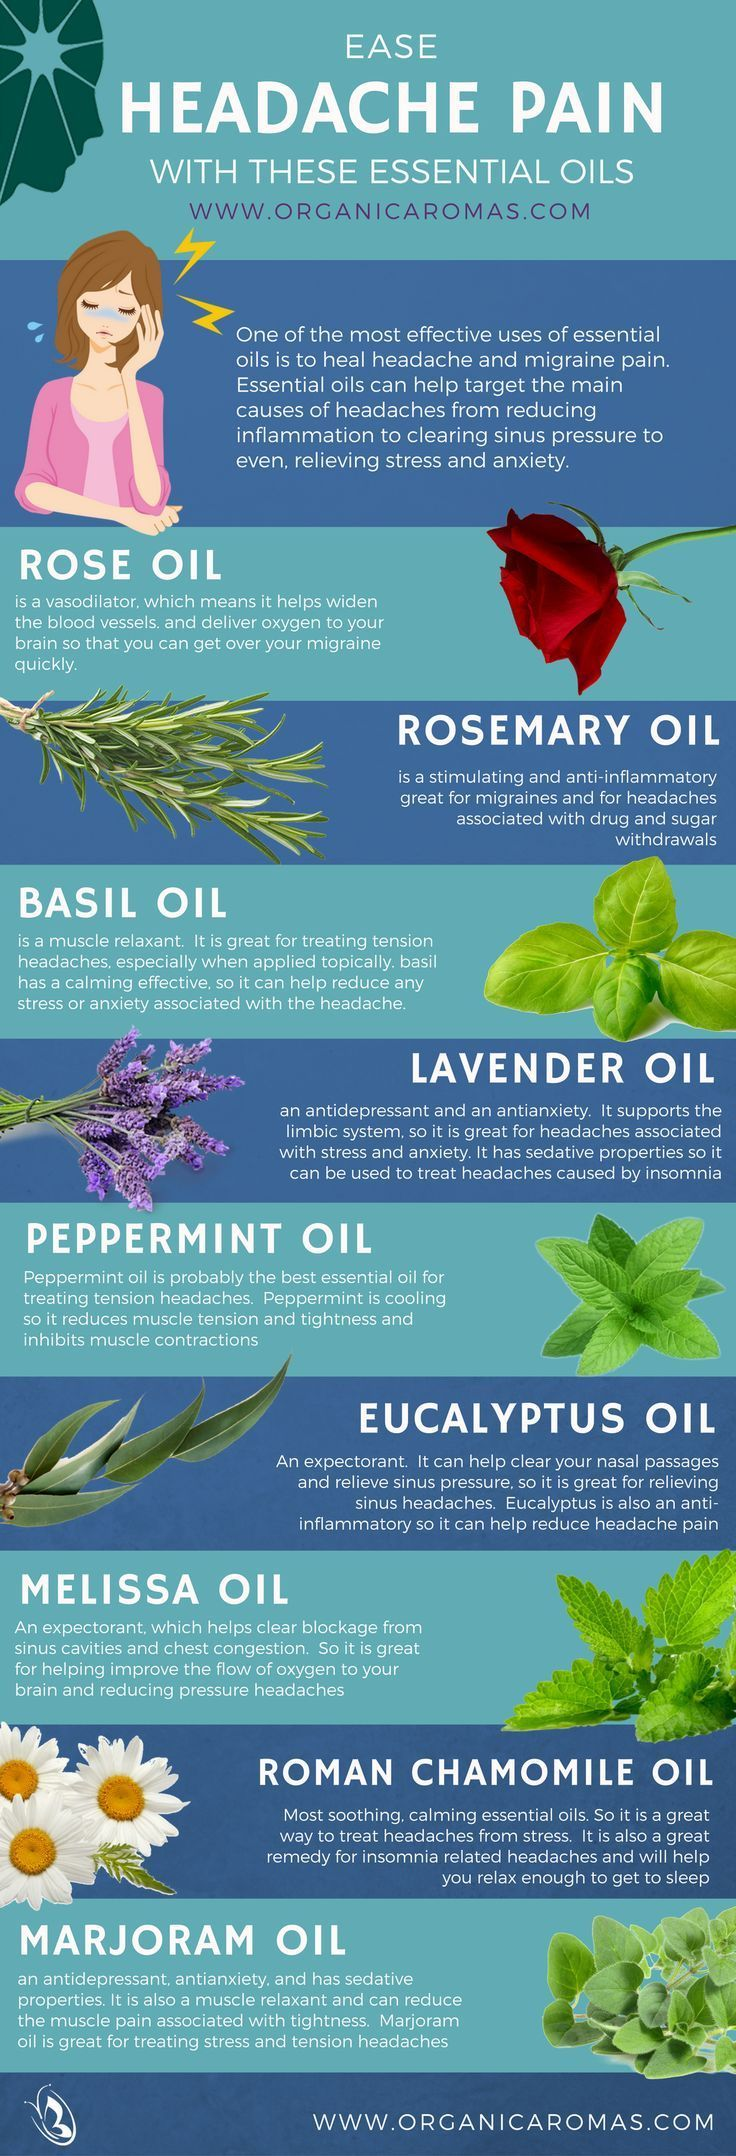 Ease Headache Pain With These Essential Oils  #InfoGraphic #EssentialOils #OrganicAromas